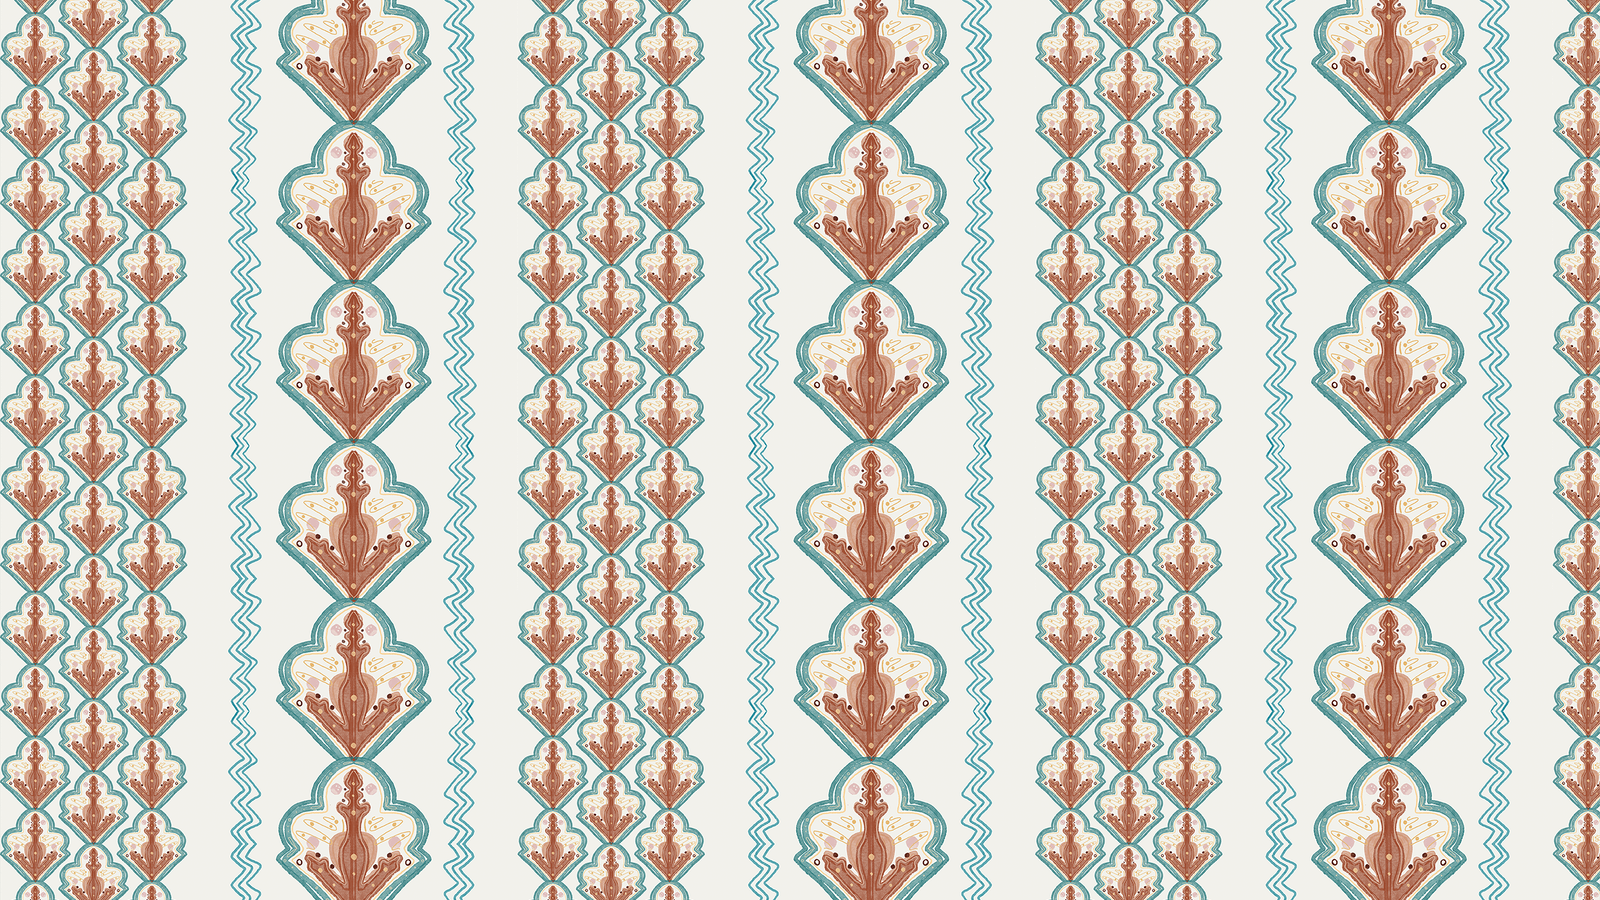 Lick x Lottie McDowell Travelling Tiles 02 orange patterned mosaic wallpaper